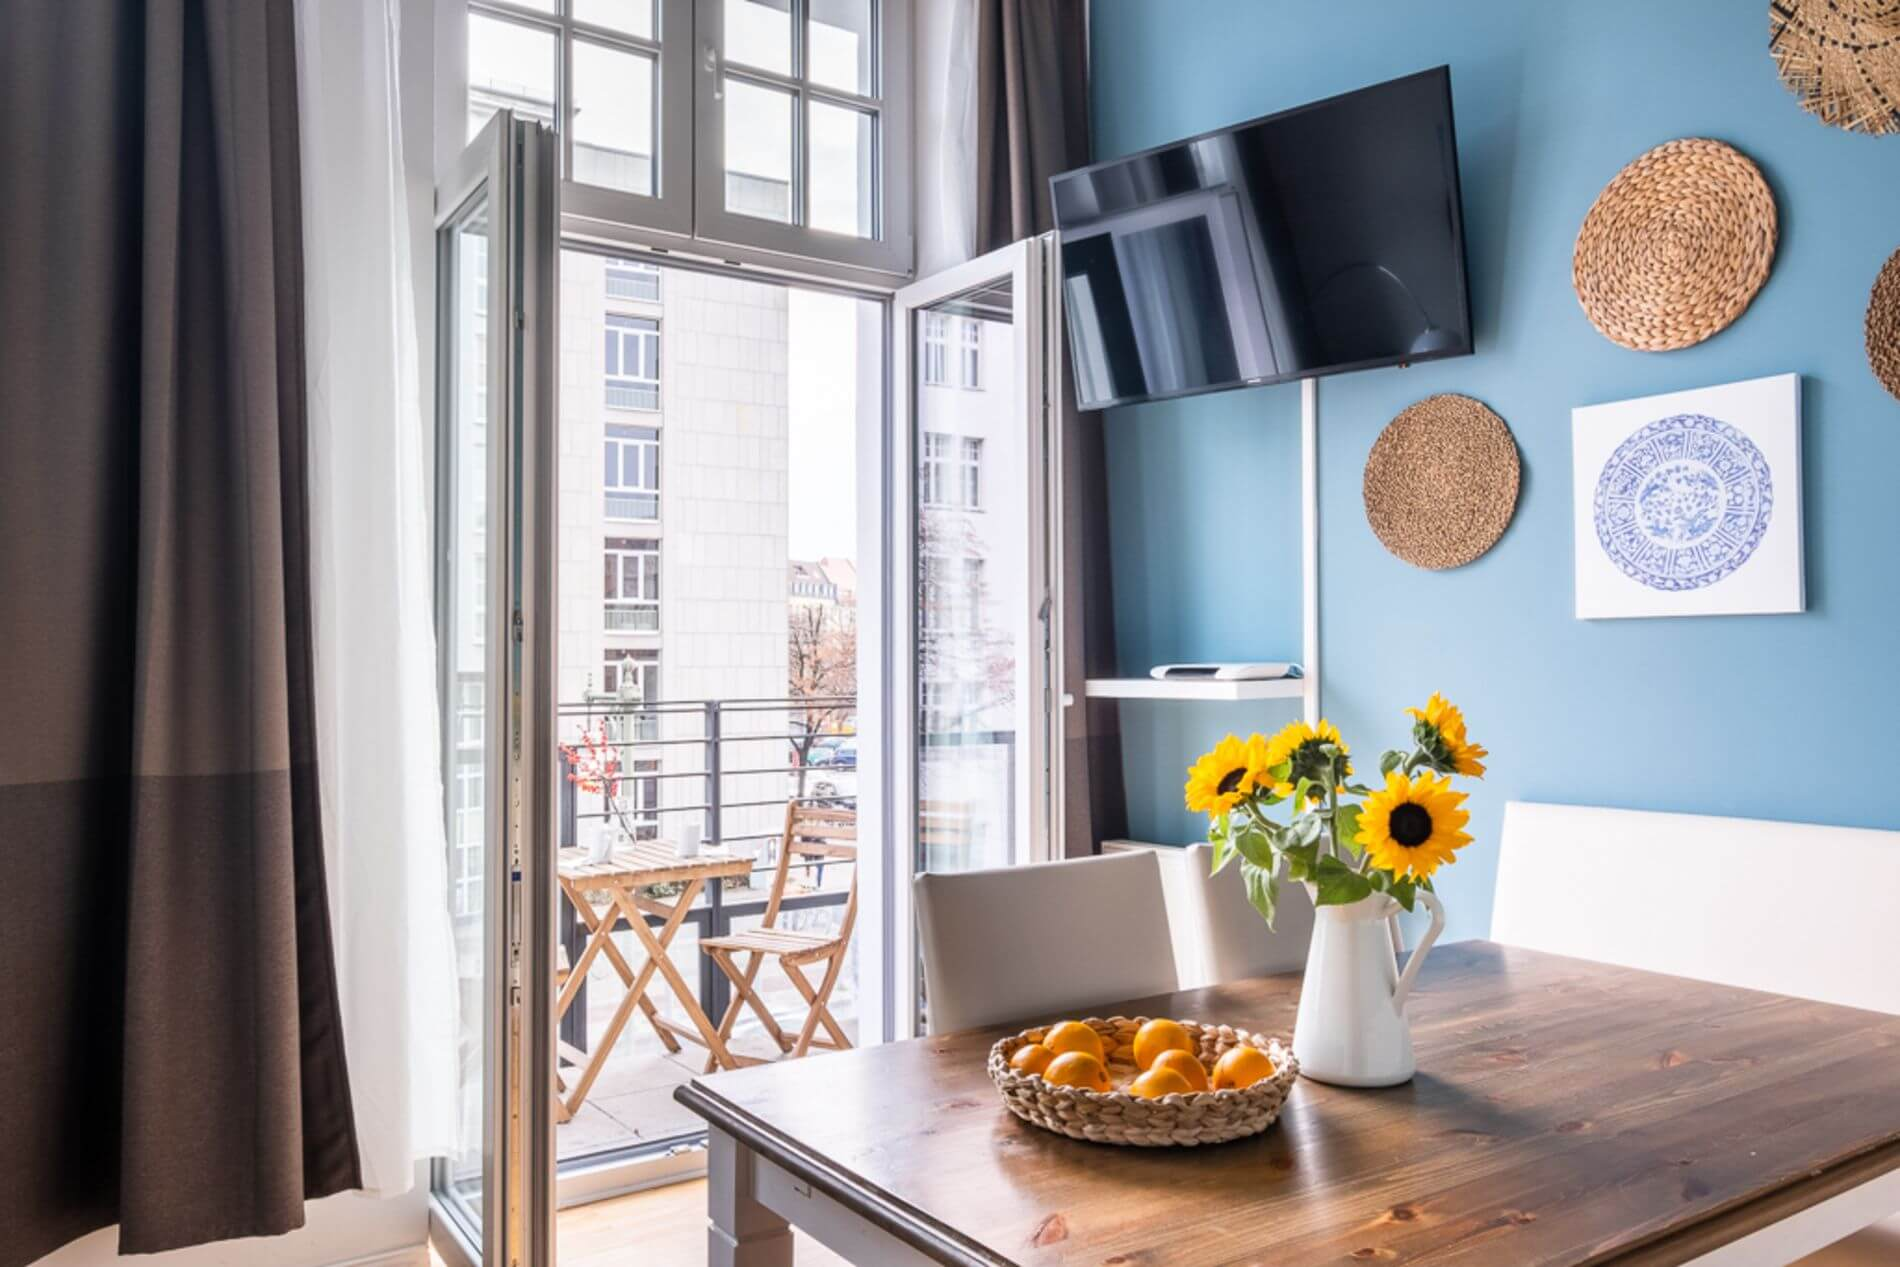 Furnished apartment in Messe Berlin that allows pets